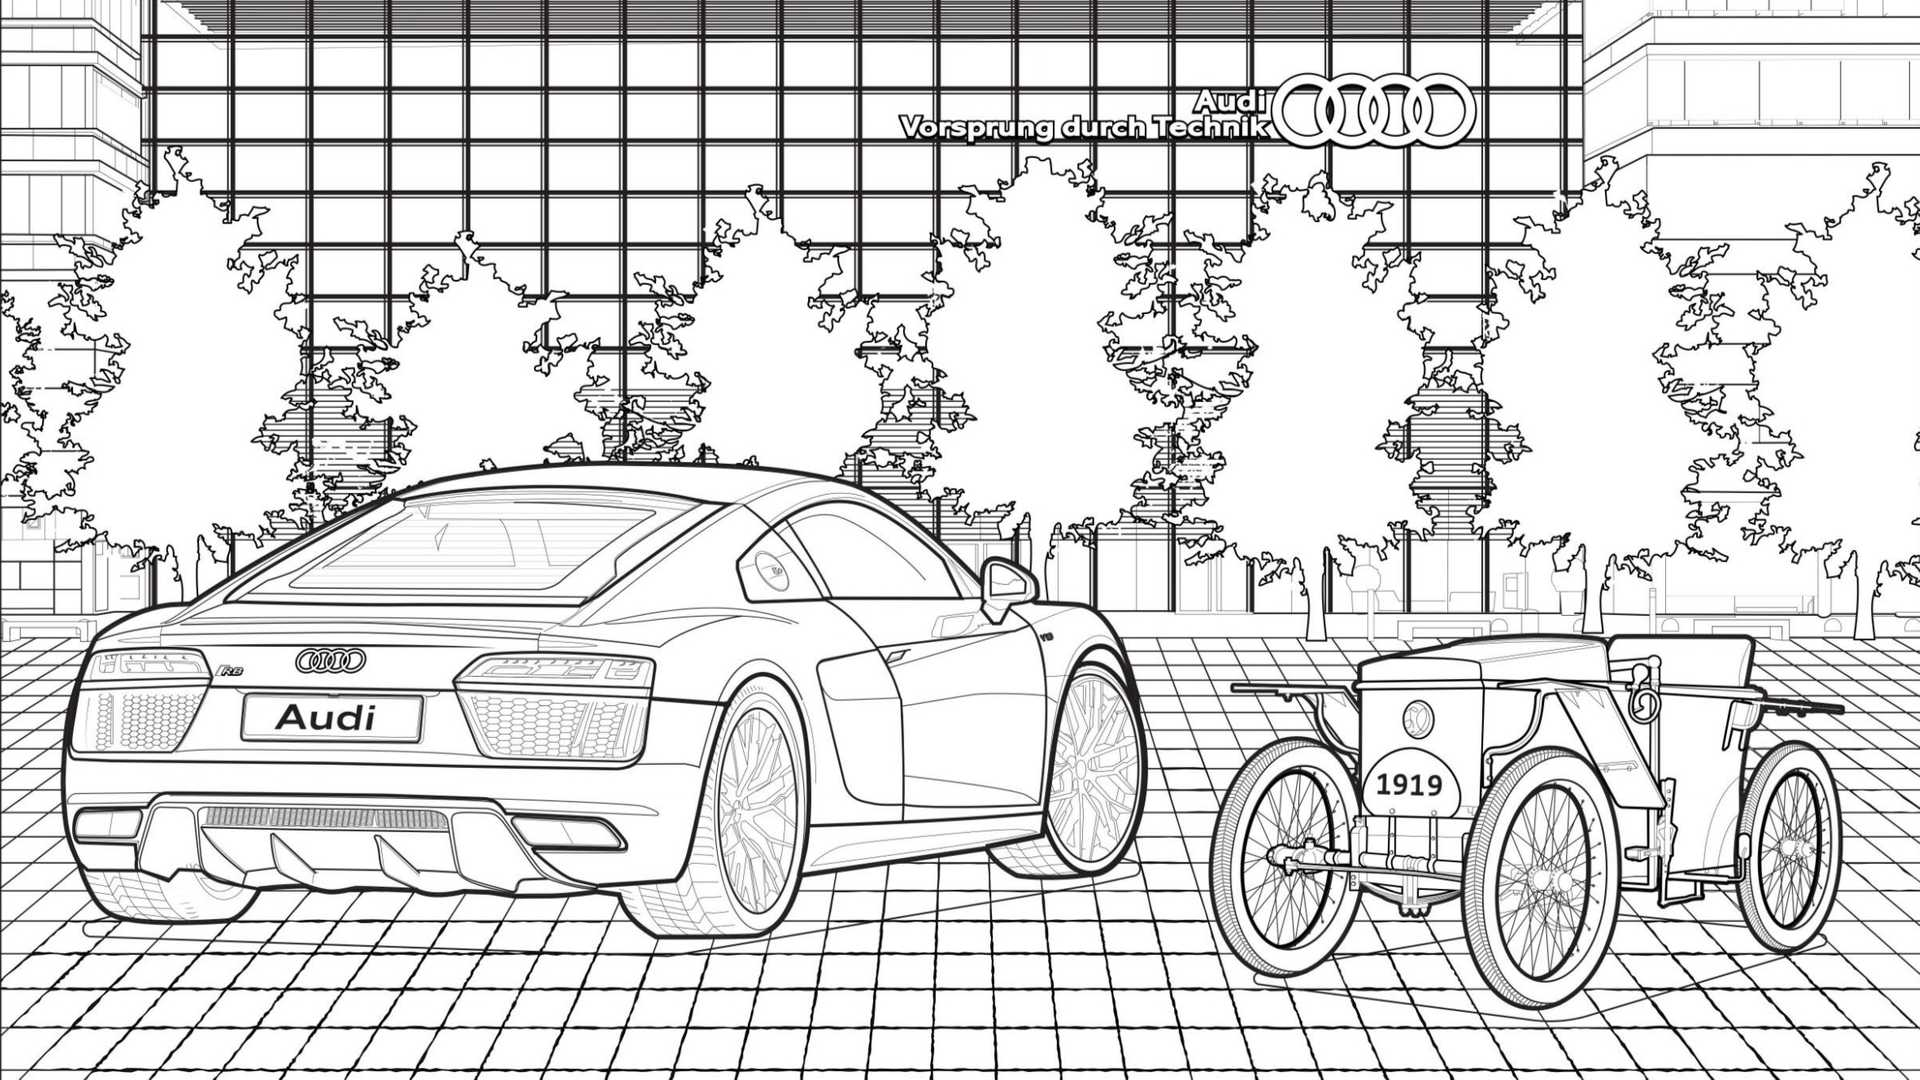 - Free Audi Coloring Book Makes The Time Go By Pleasantly